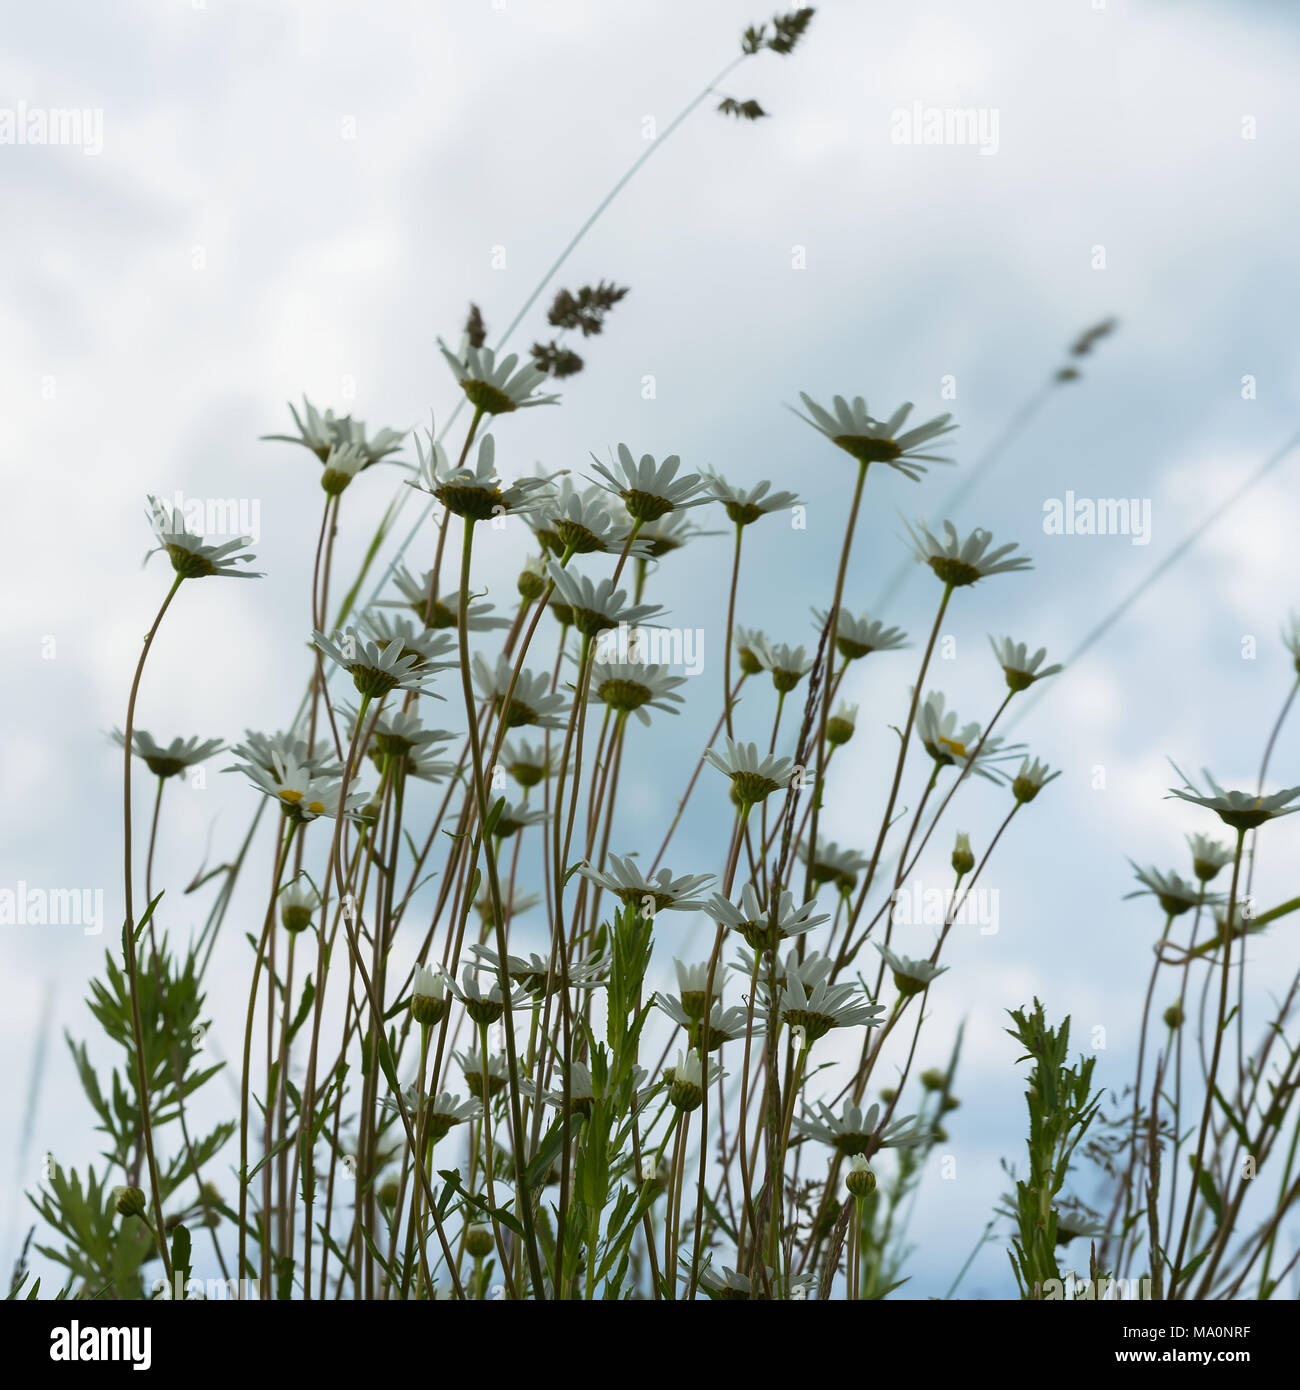 Windy day after the rain, gloomy sky. Beautiful white daisies against dark blue sky with clouds, view from below. Concept of seasons, ecology, green planet - Stock Image